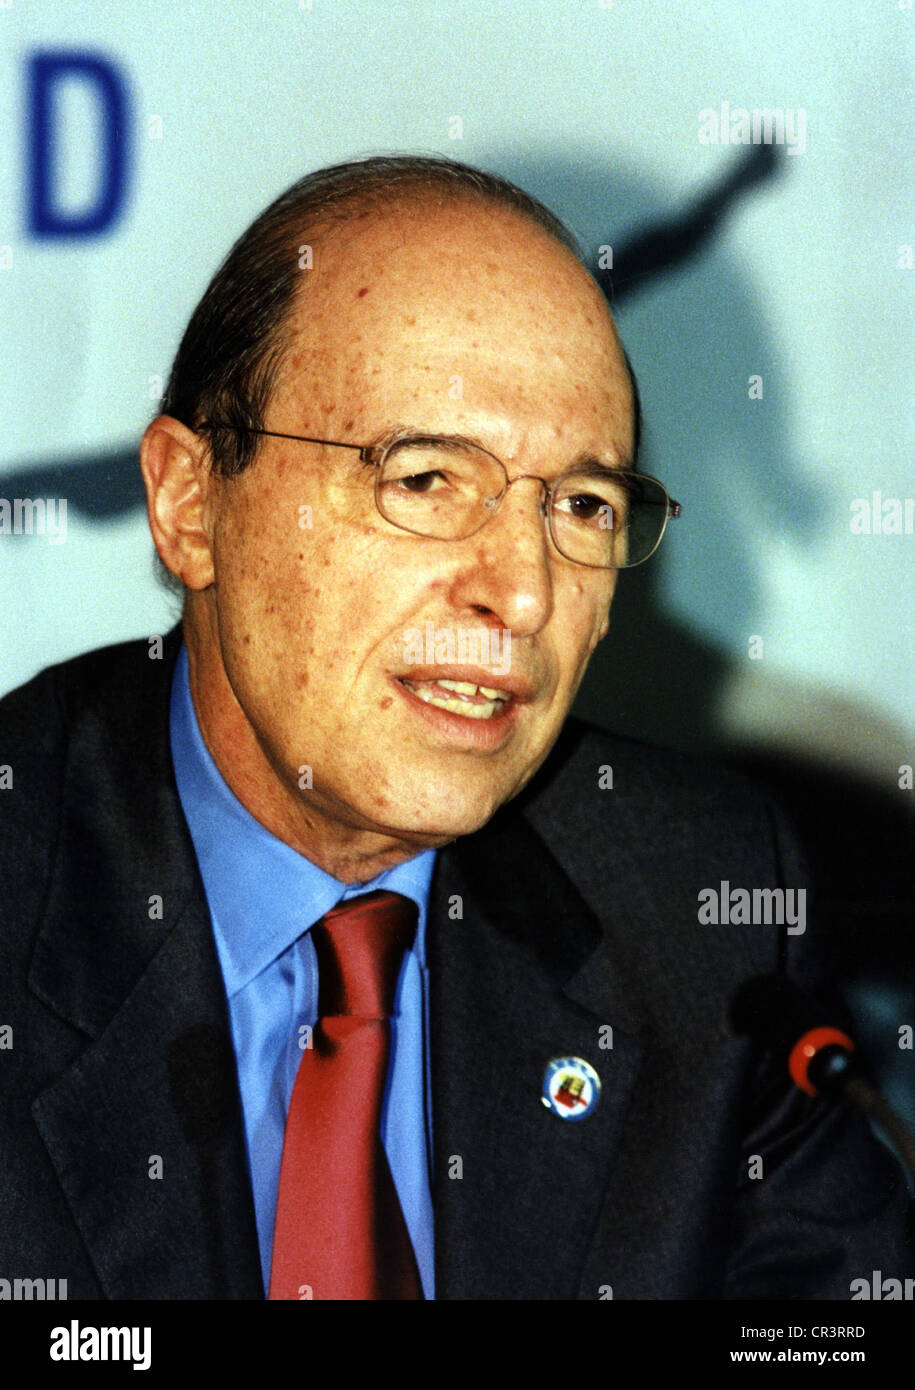 Simitis, Konstantinos, 23.6.1936, Greek politician, portrait, 1999, Additional-Rights-Clearances-NA - Stock Image